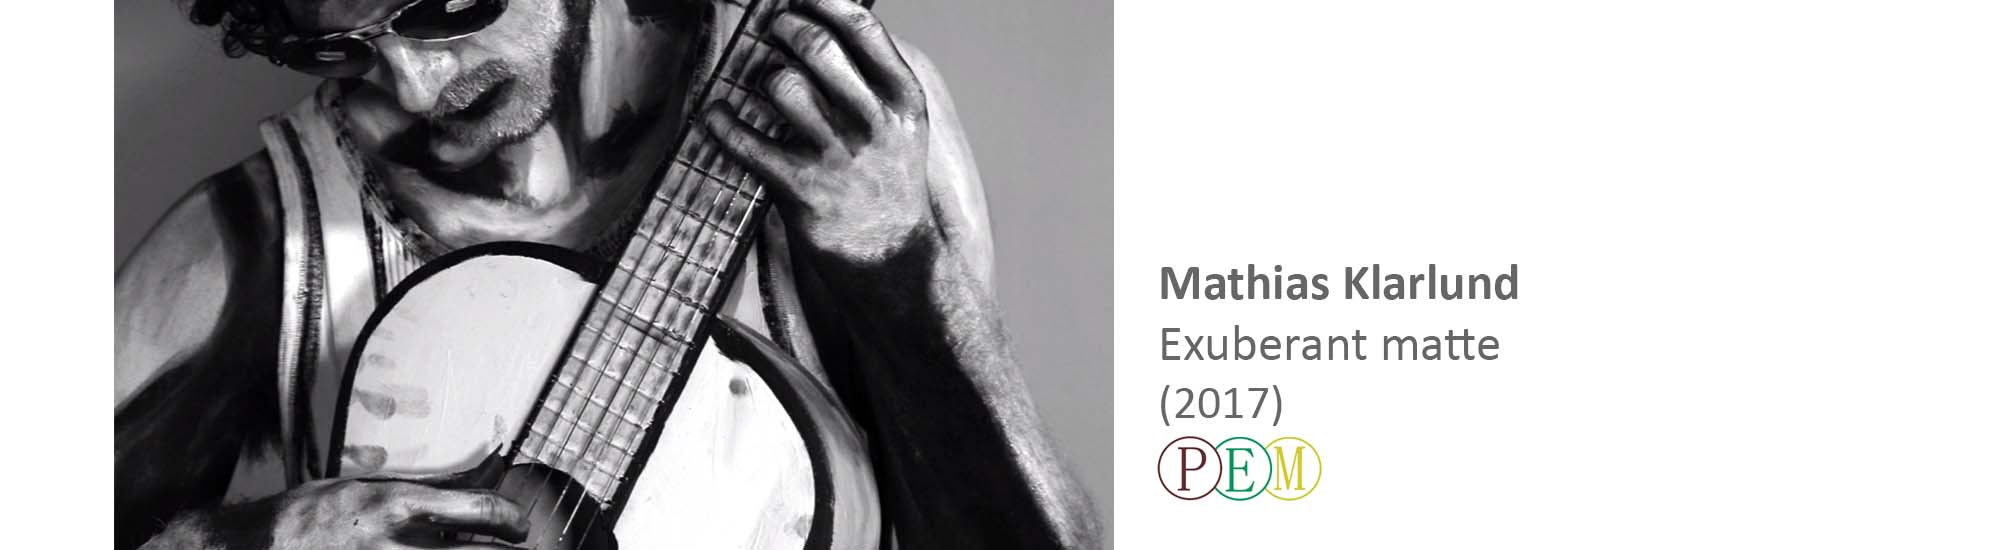 Mathias Klarlund - Exuberant matte Mina Paasche frederik brandt jakobsen producer engineer mastering mix art sound rupert neve se electronics rn17 recorded guitar acoustic classical